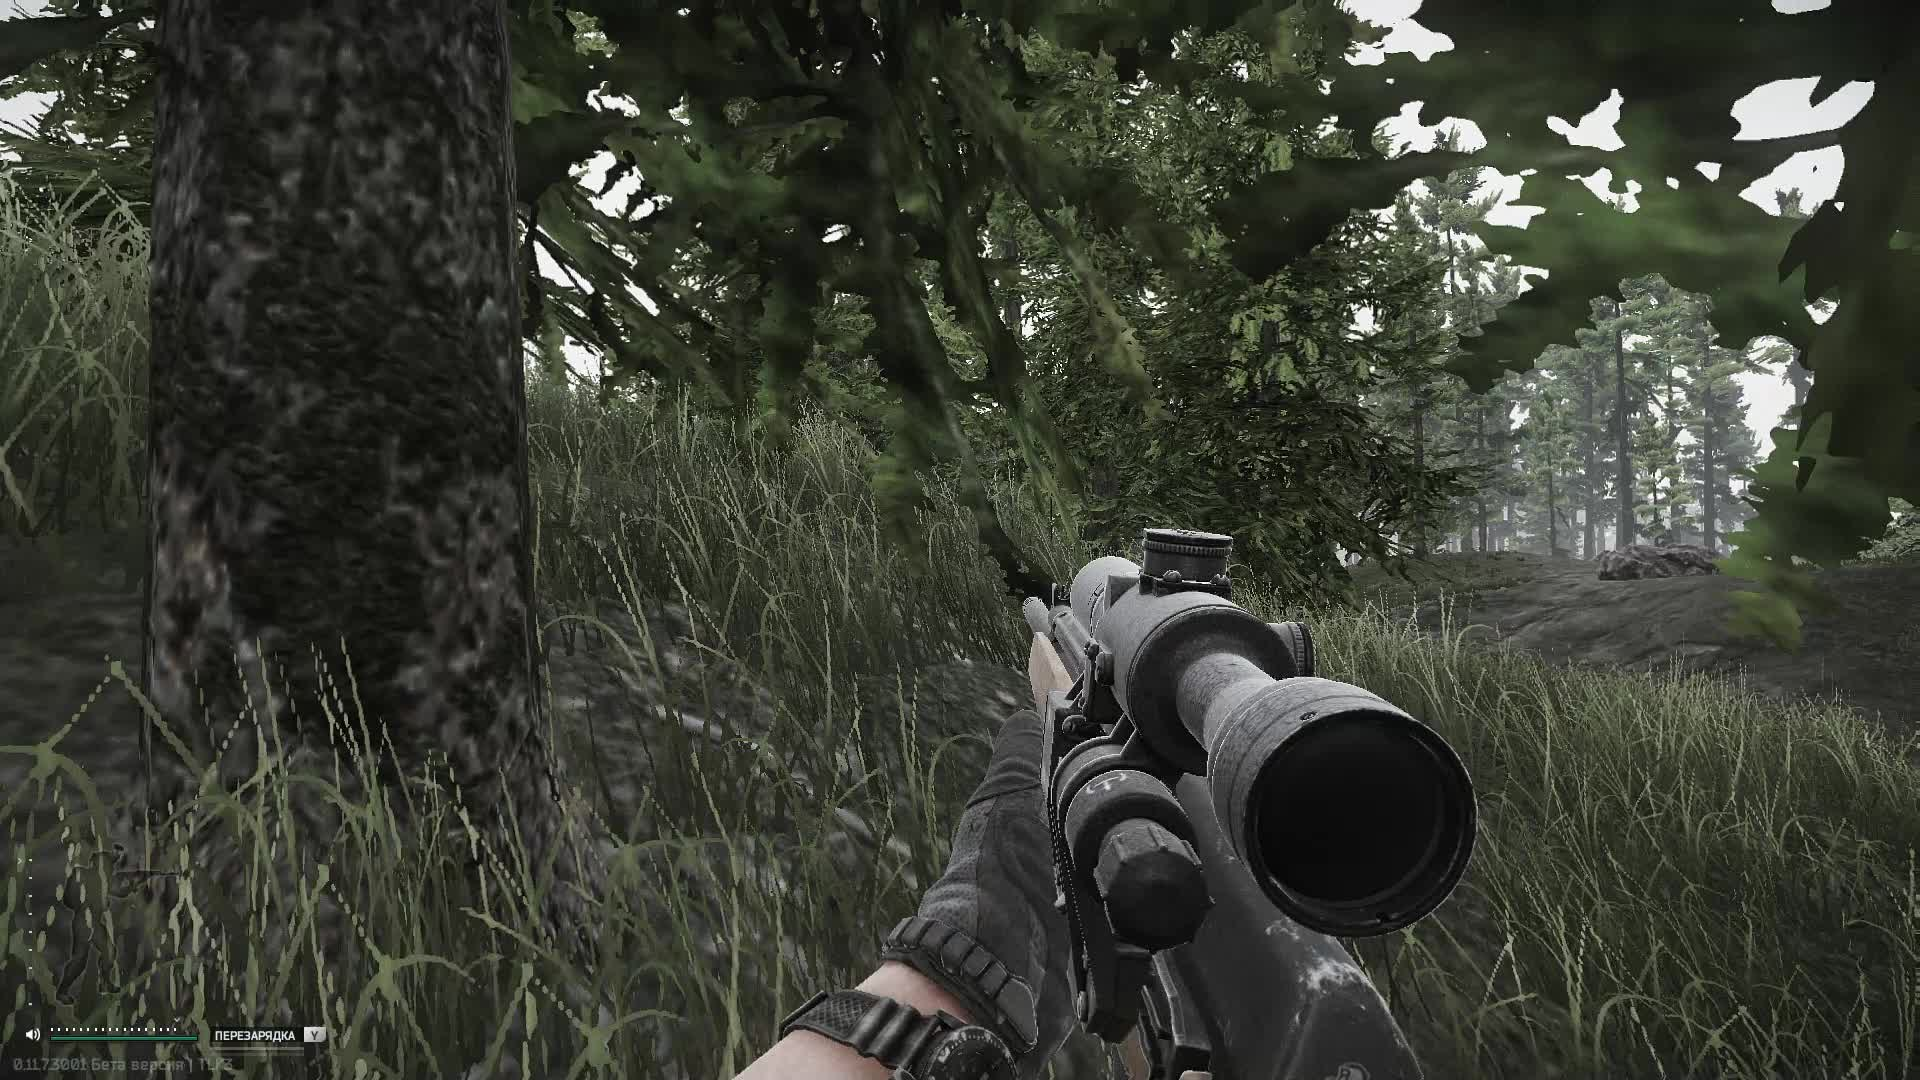 escapefromtarkov, Escape From Tarkov 2019.04.15 - 16.28.50.25.DVR GIFs